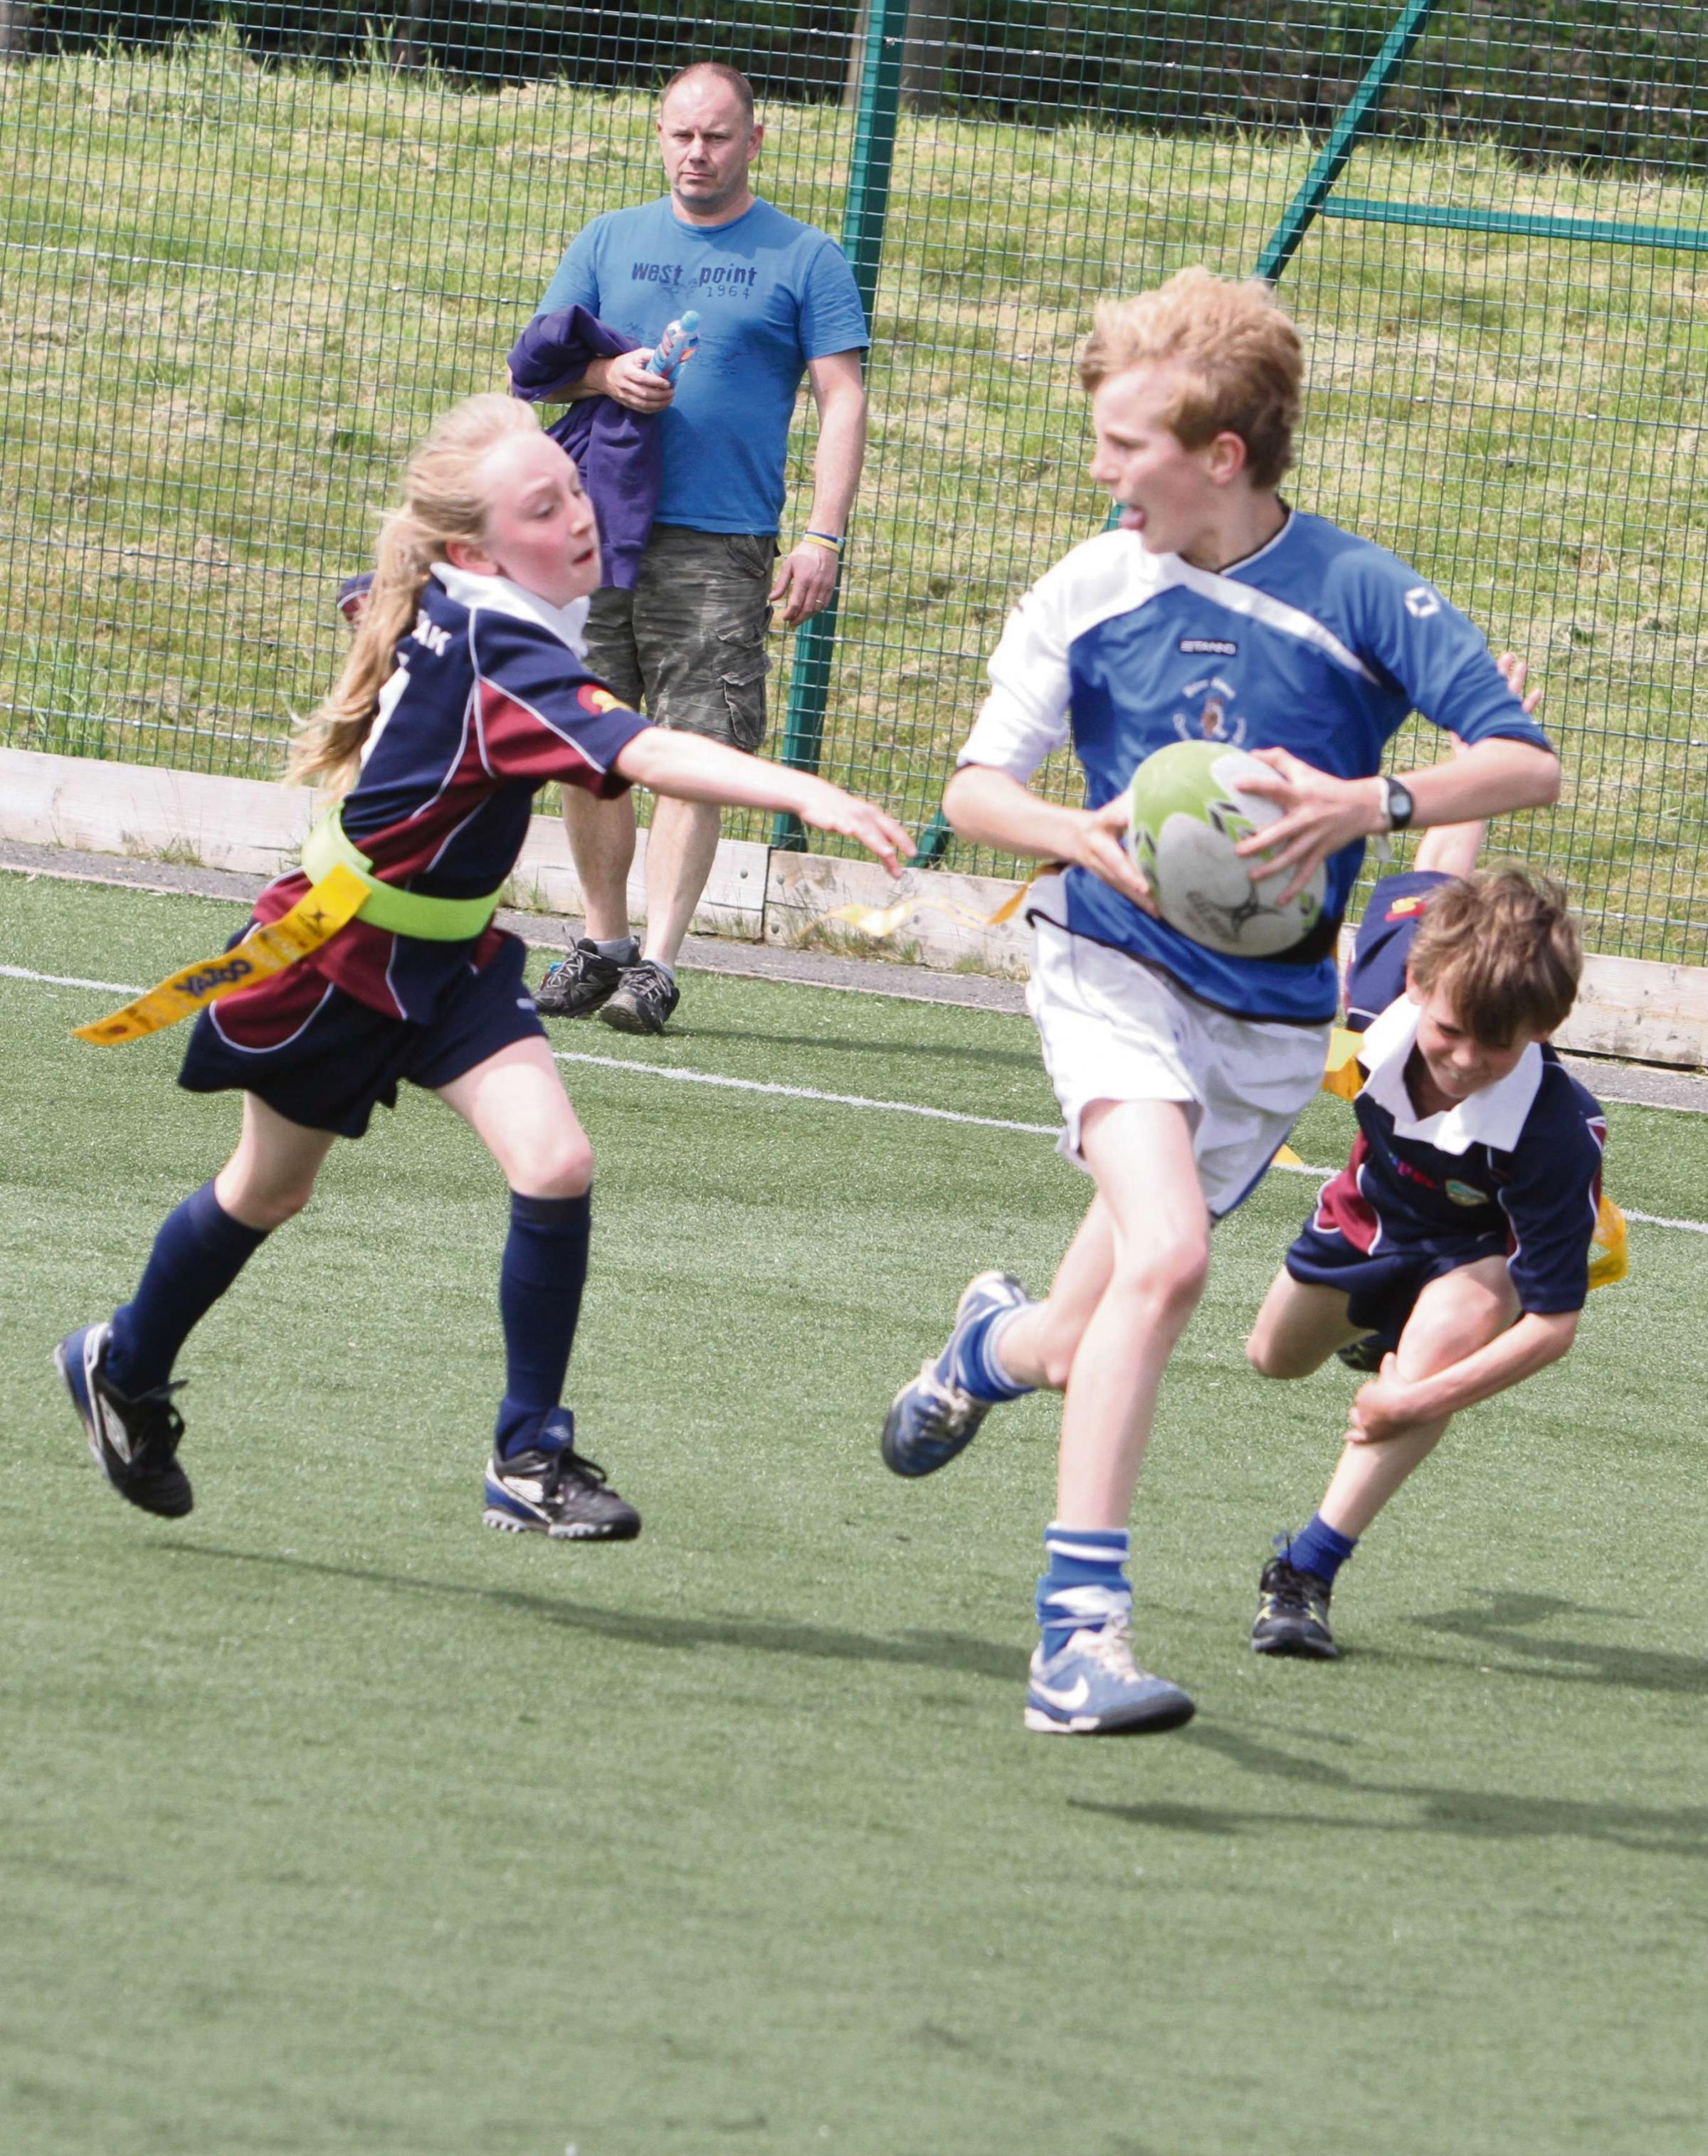 Primary school pupils take part in tag rugby contest